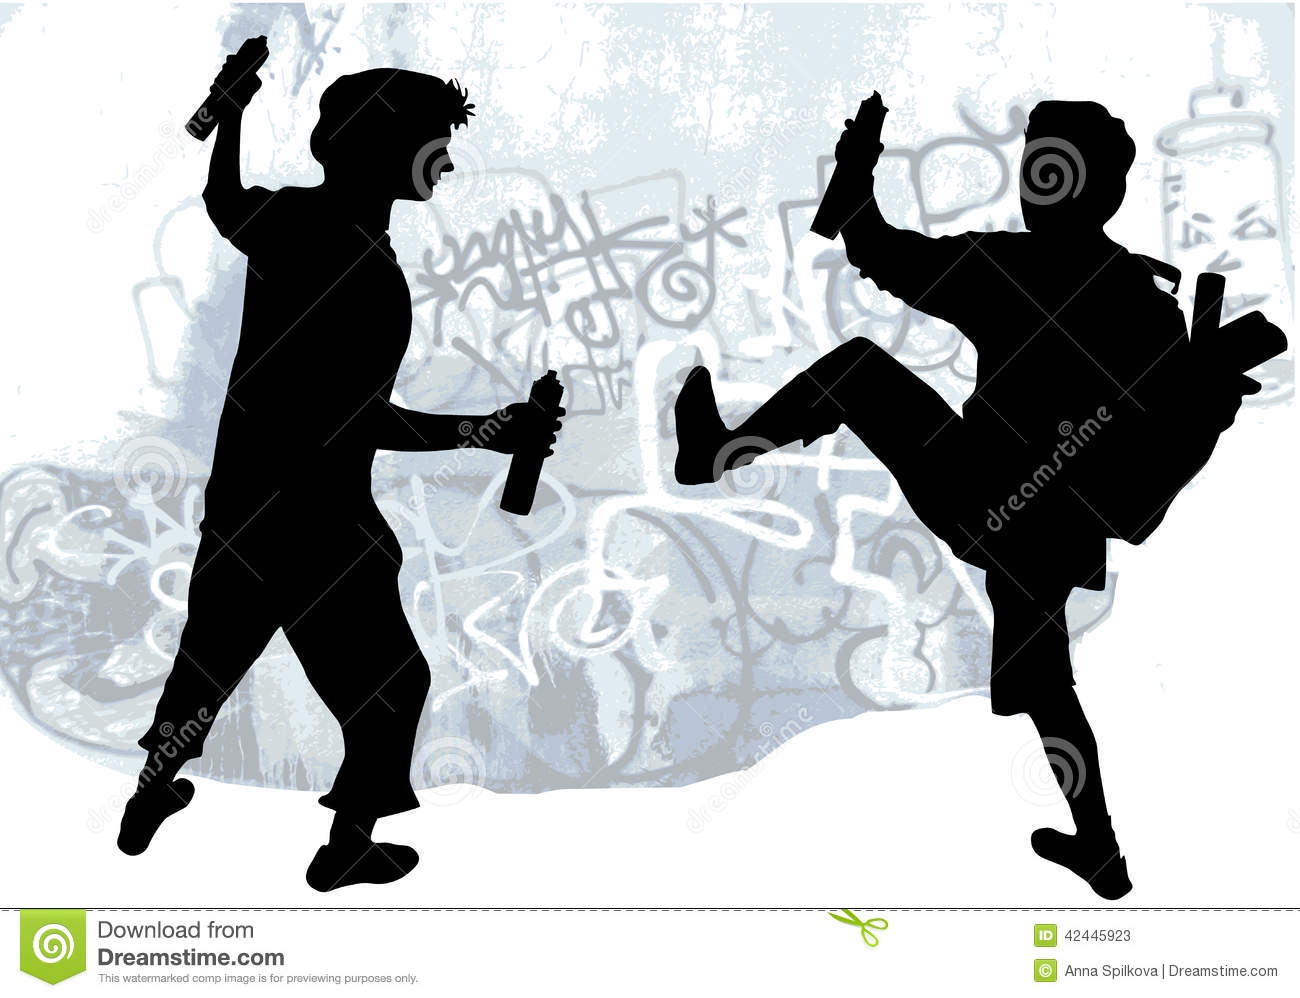 Silhouettes Of Taggers Drawing Graffiti Stock Vector - Image: 42445923